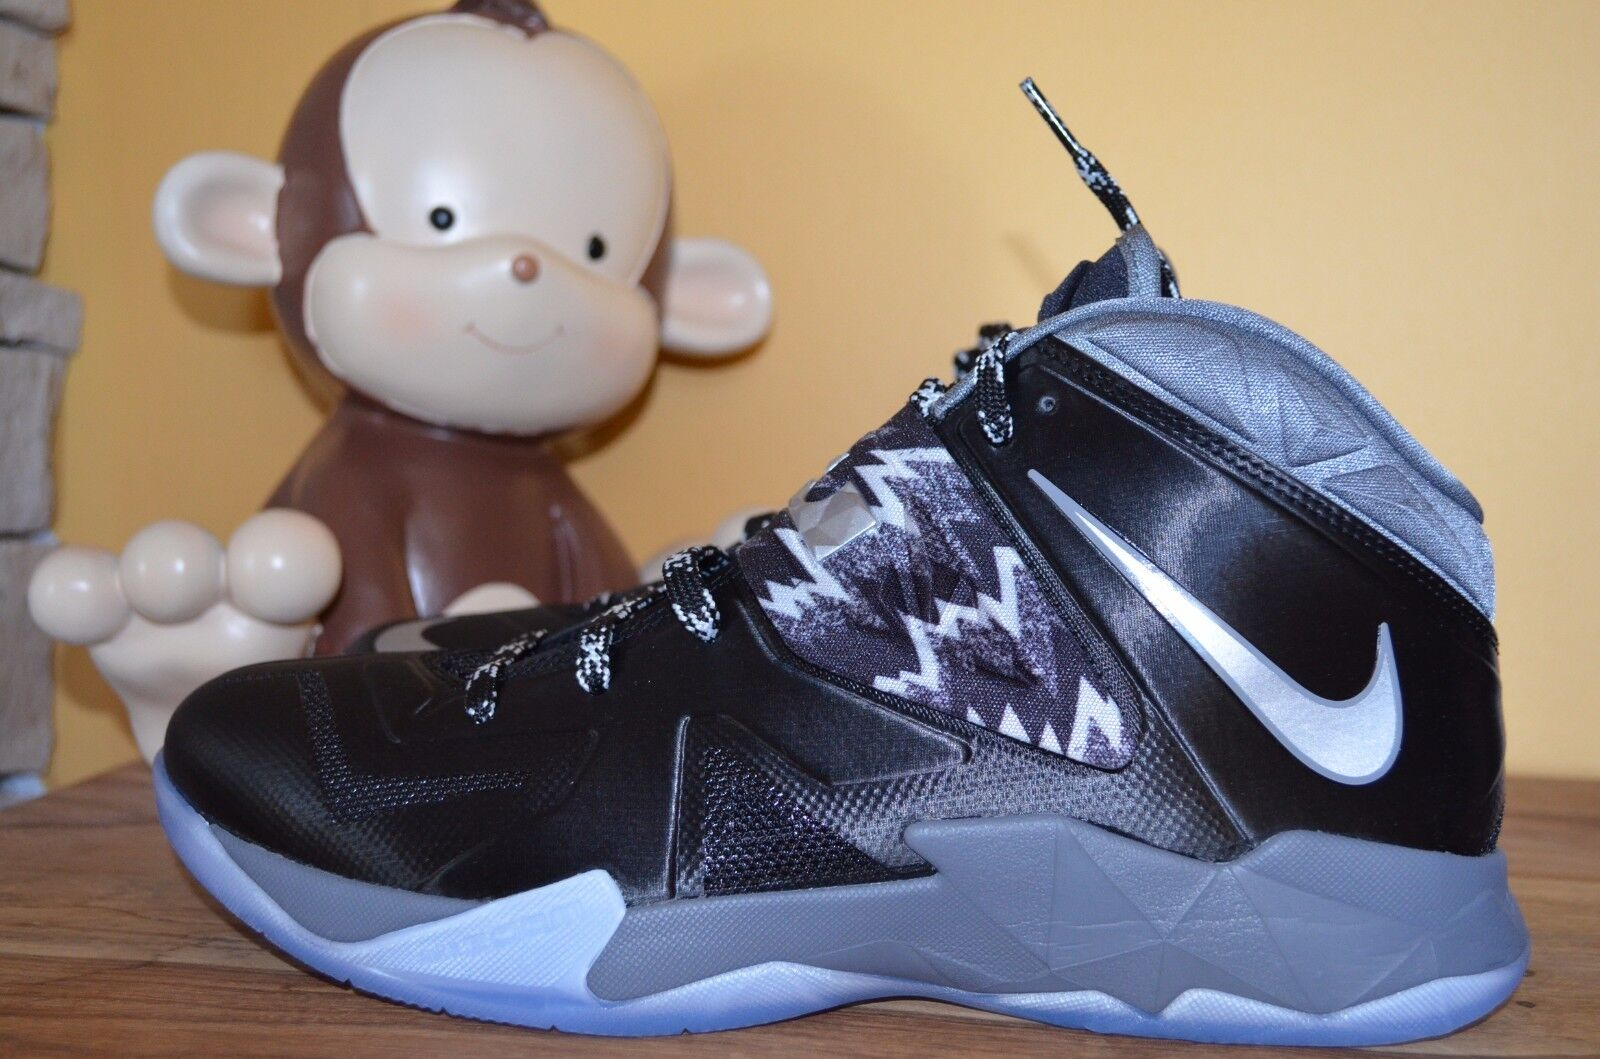 NEW NIKE ZOOM SOLDIER VII PP Black/Silver/Cool Grey SZ 11 12 Lebron 609679-001